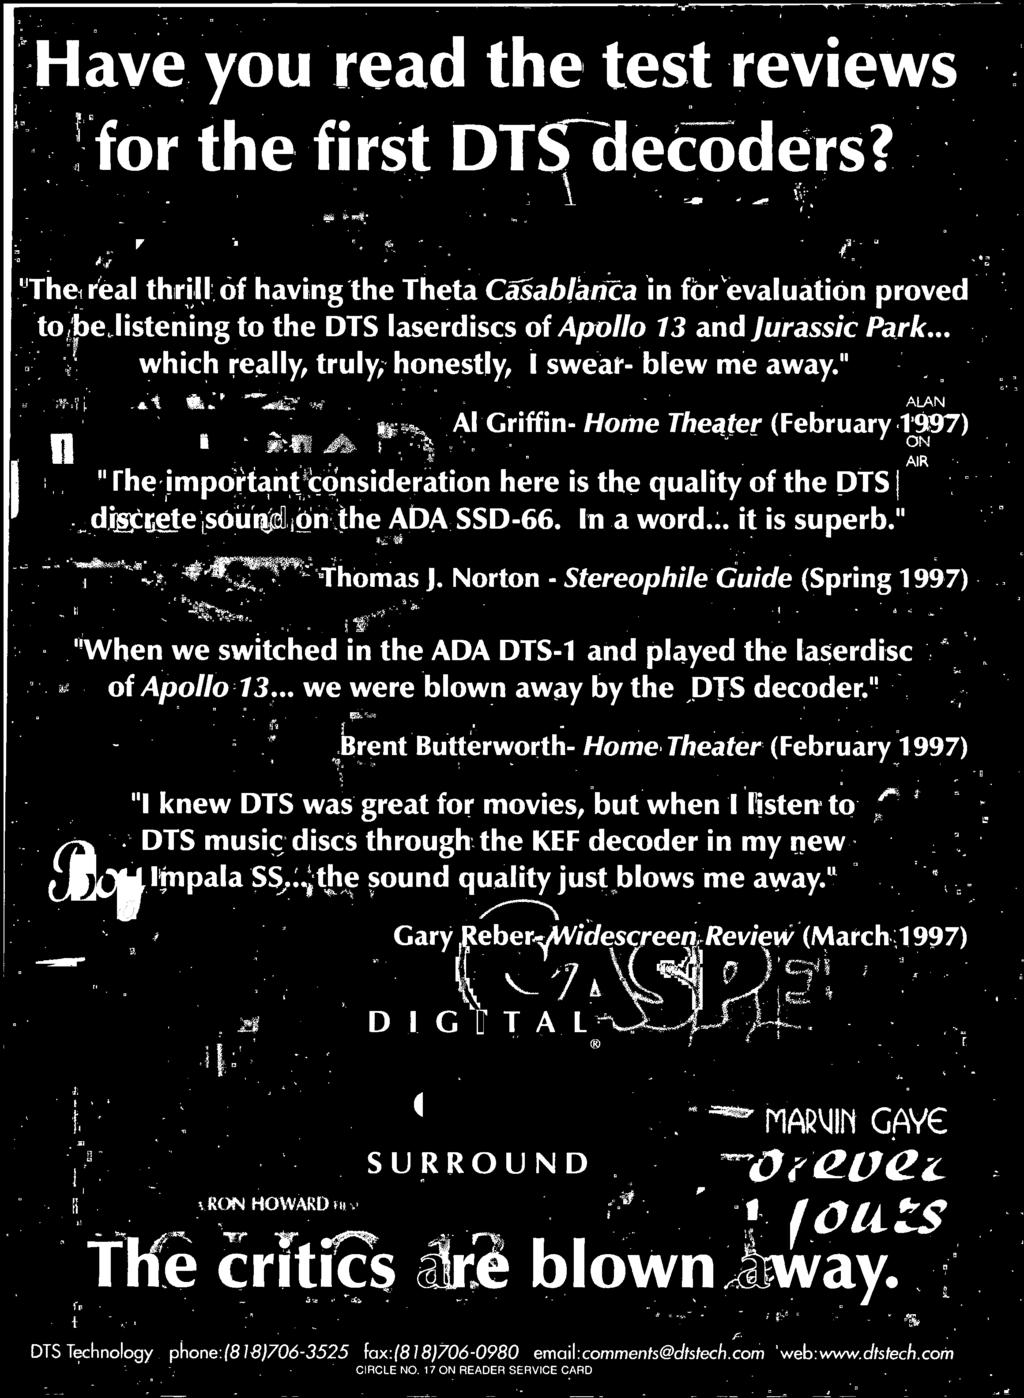 "Norton - Stereophile Guide (Spring 1997) ""When we switched in the ADA DTS-1 and played the laserdisc of Apollo 13... we were blown away by the DTS decoder."